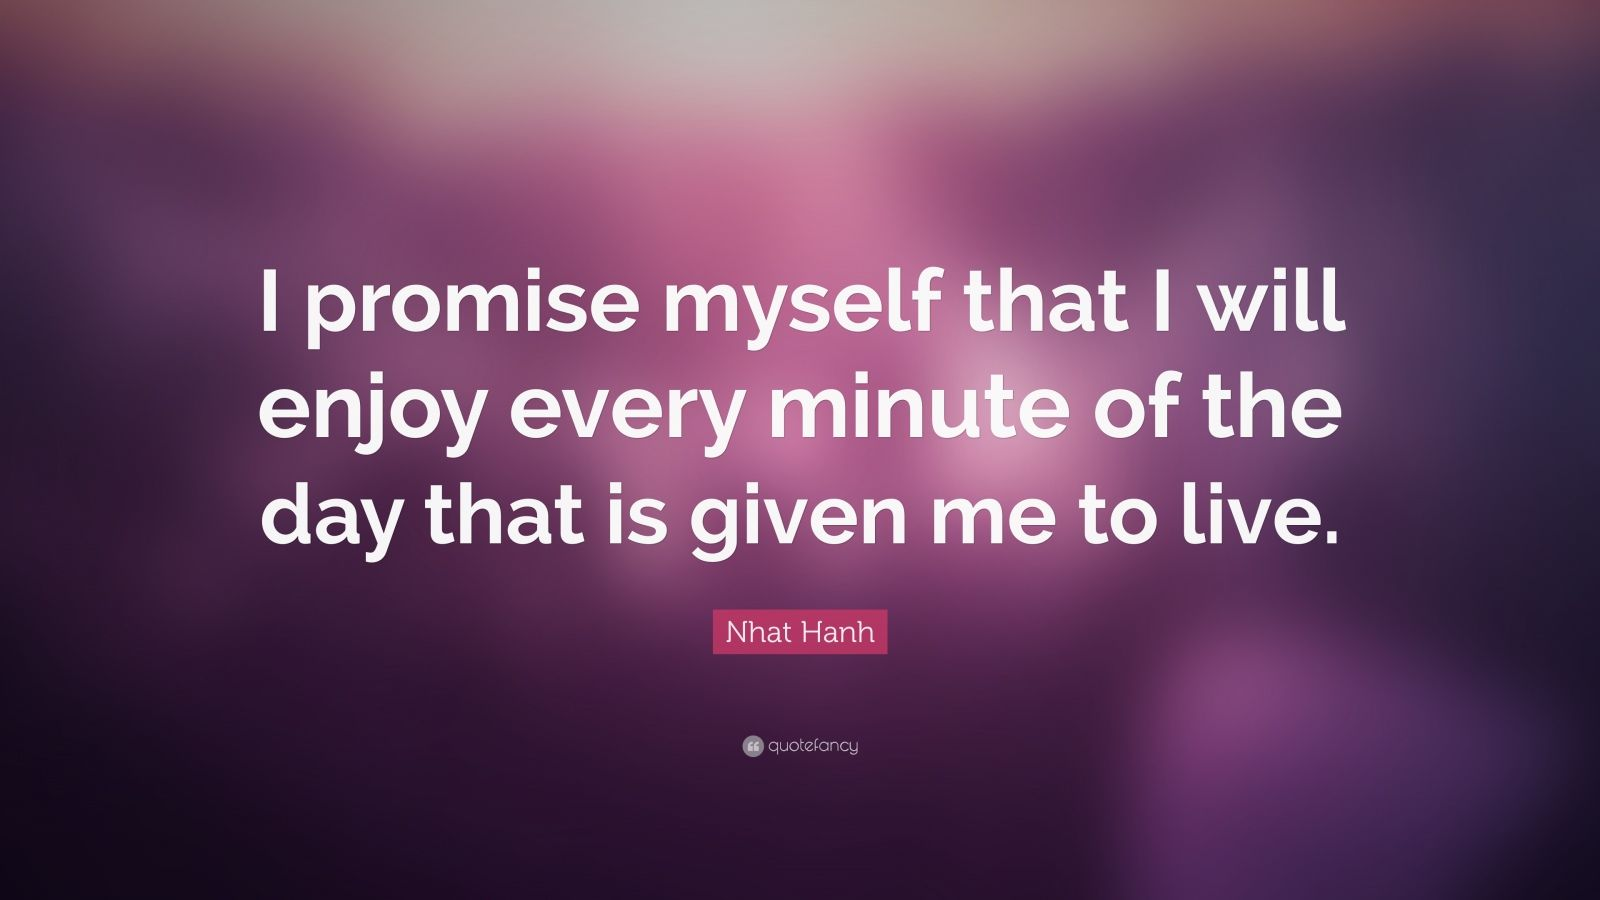 """Nhat Hanh Quote: """"I promise myself that I will enjoy every minute of the day that is given me to live."""""""